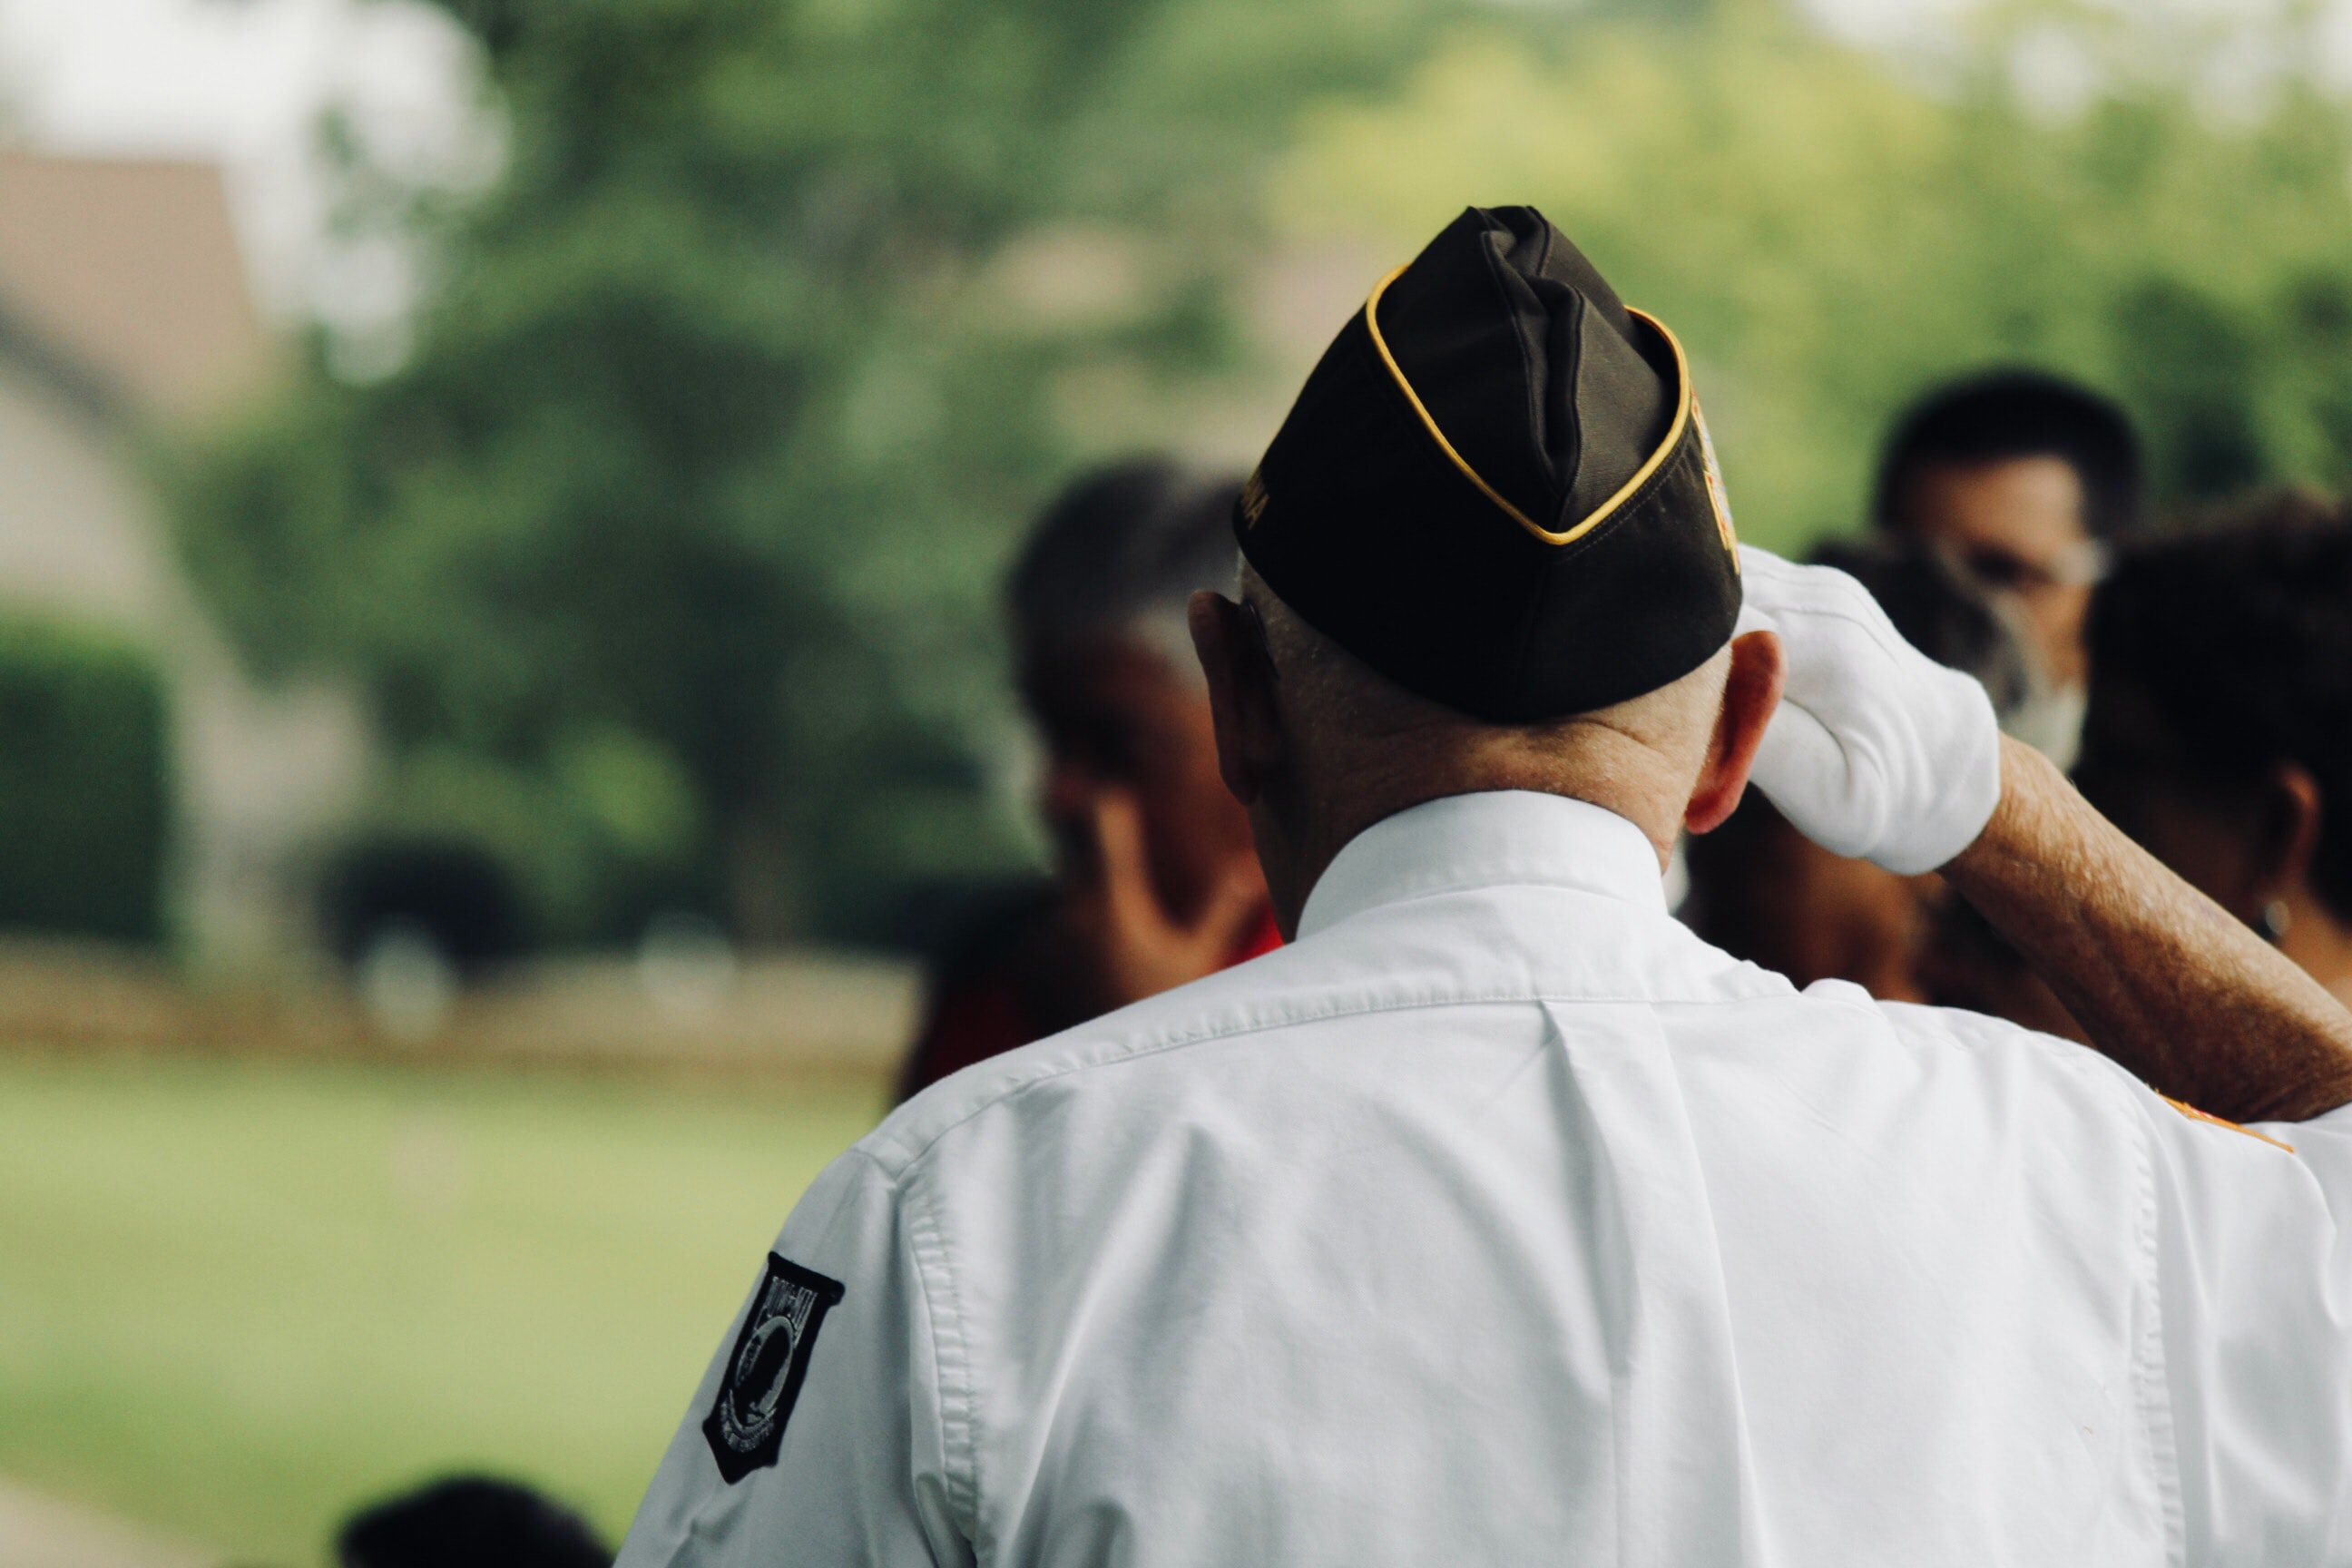 Back view of veteran saluting; image by Sydney Rae, via Unsplash.com.